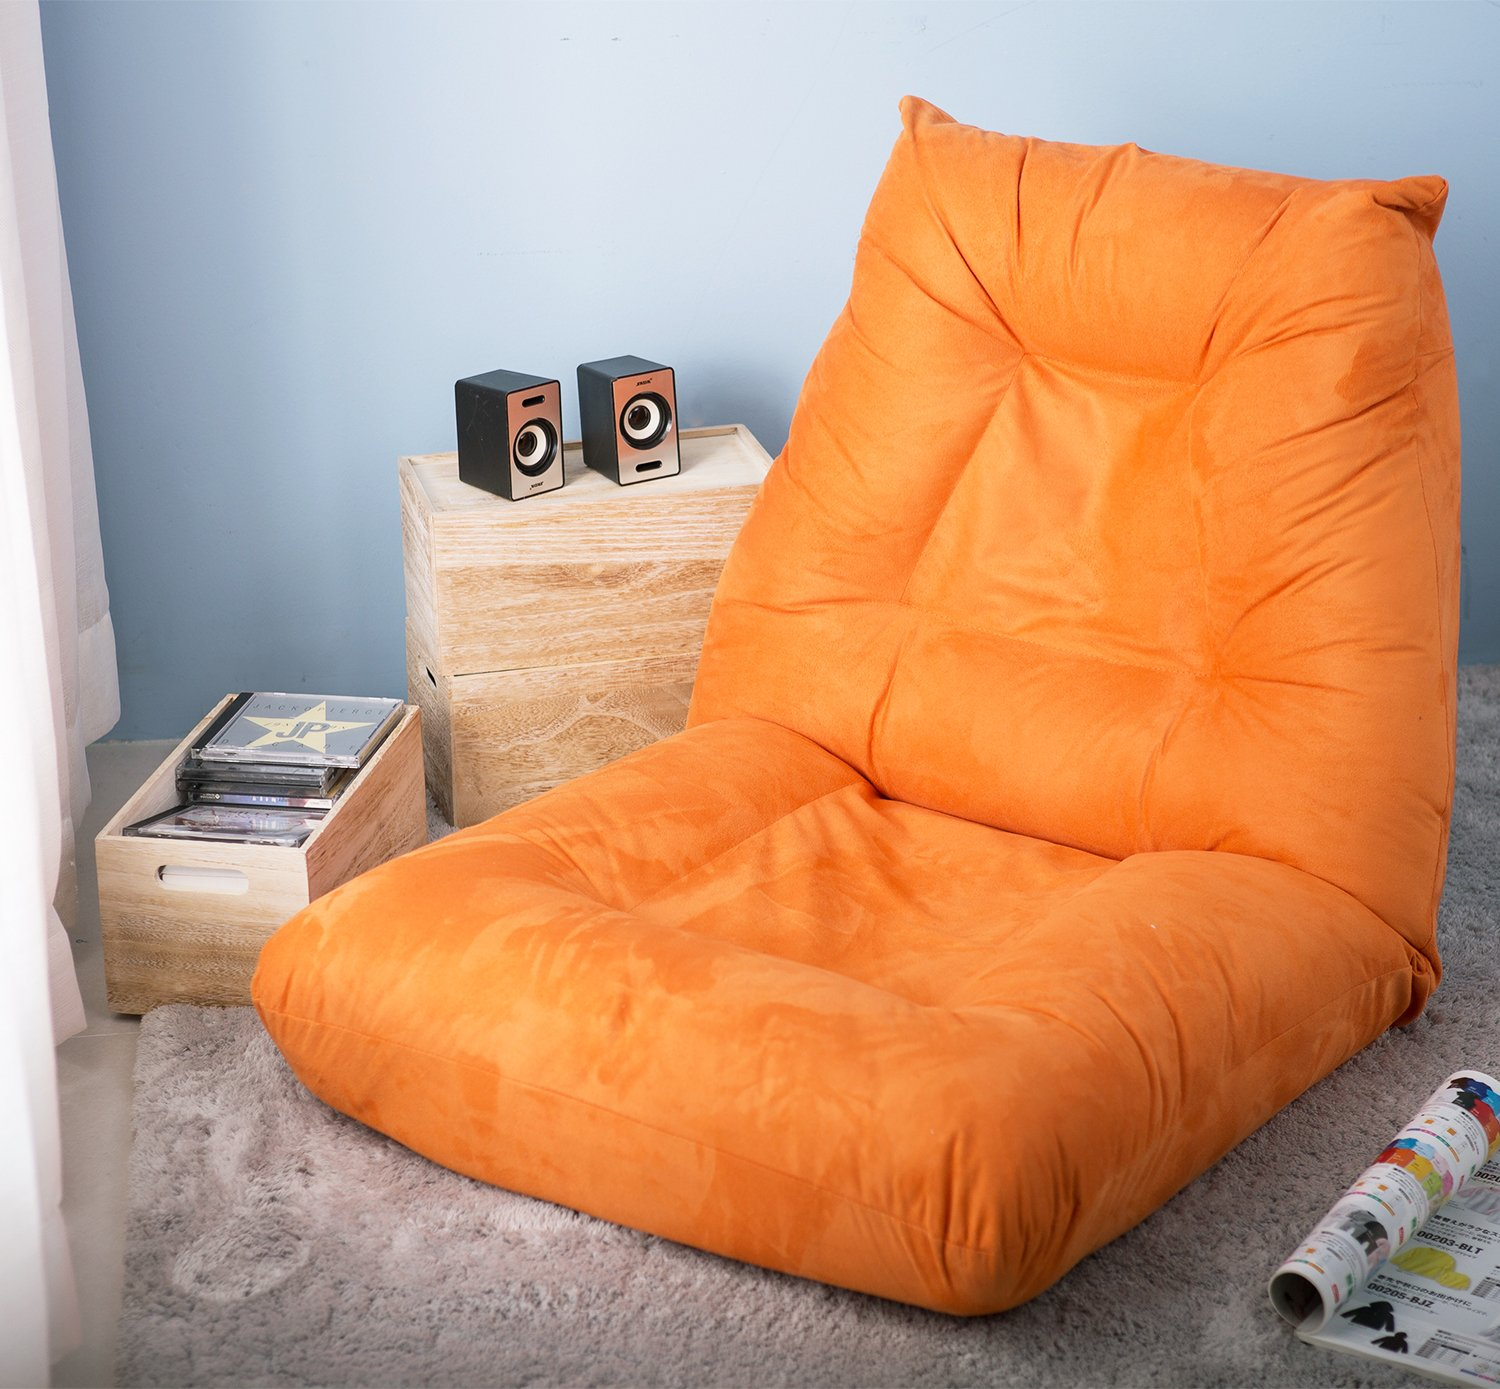 Amazon.com: Merax Adjustable 5-Position Floor Chair Folding Lazy Sofa Floor  Sofa Chair Cushion Orange: Home & Kitchen